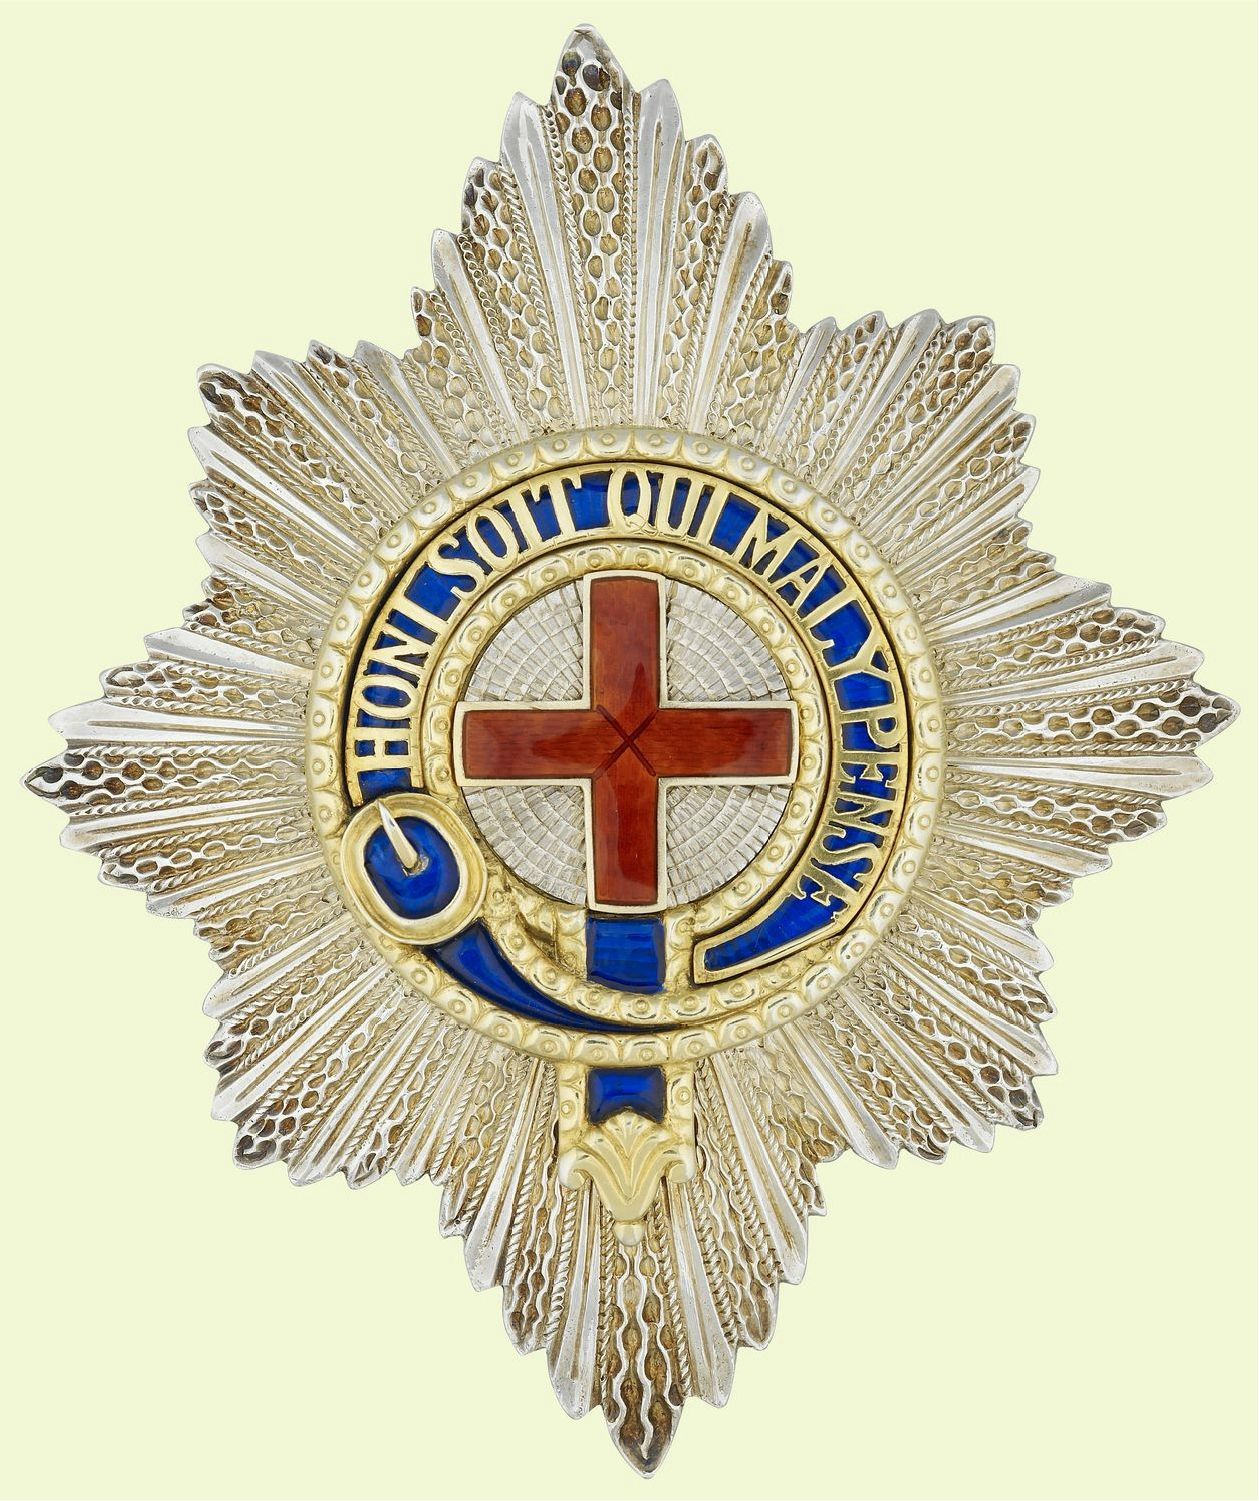 Order Of The Garter Star Similar To The One That Was Worn By Prince Philip The Duke Of Edinburgh On His Wedding Day 10 X 8 X Order Of The Garter Art Knight